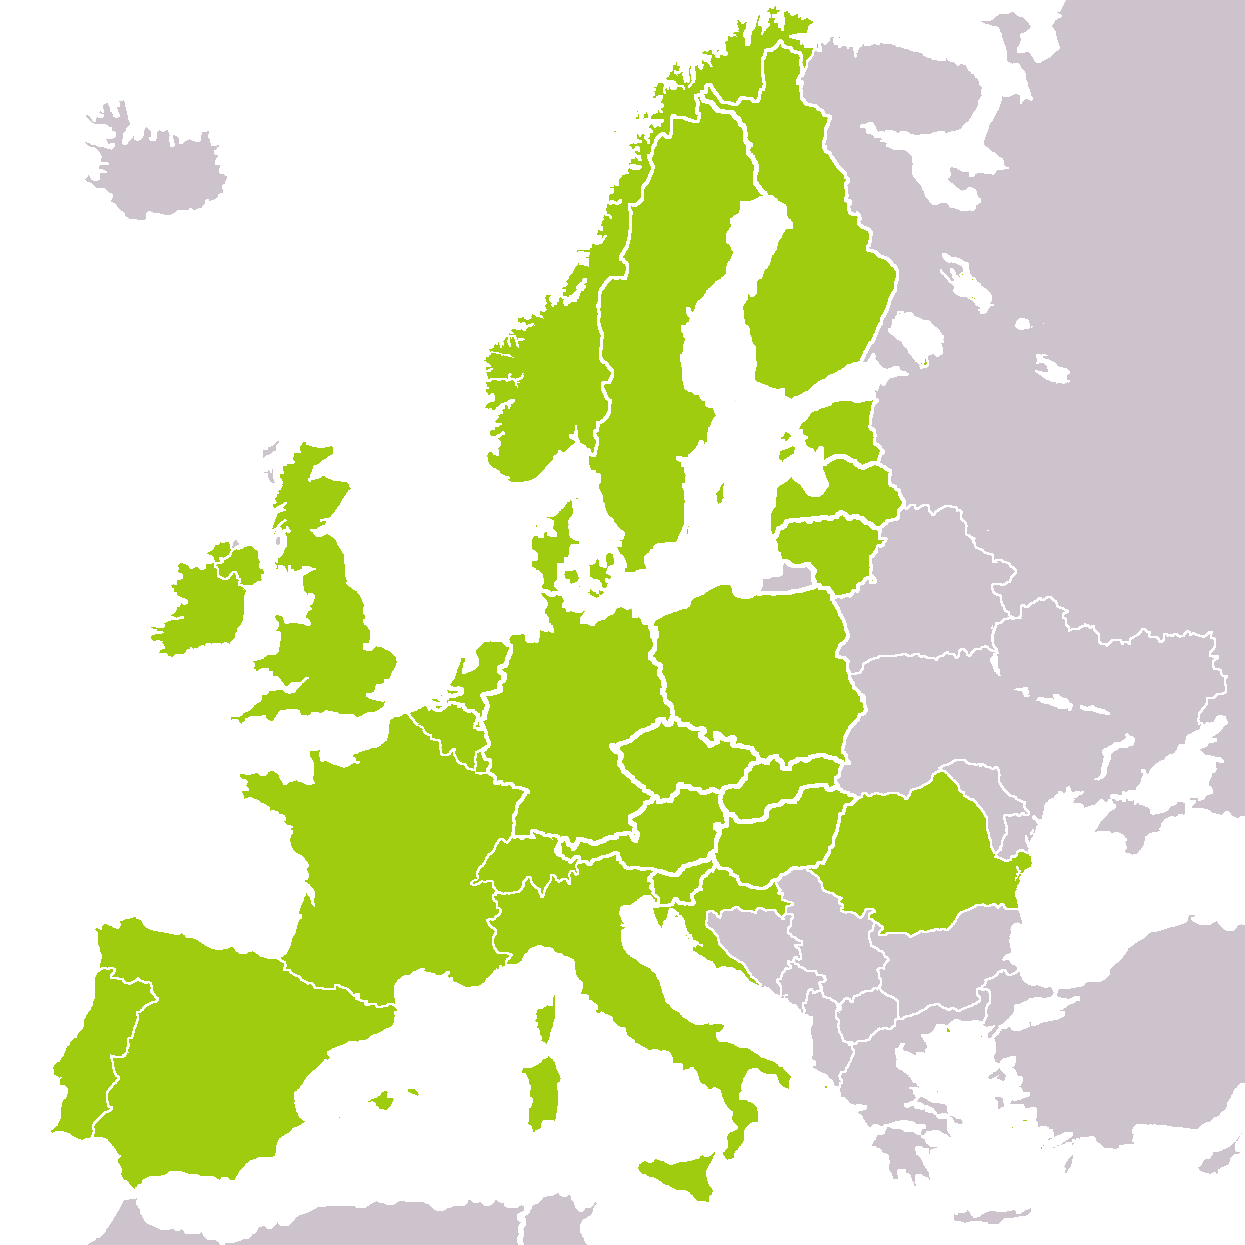 Europe map - HIRVI Transport Kft